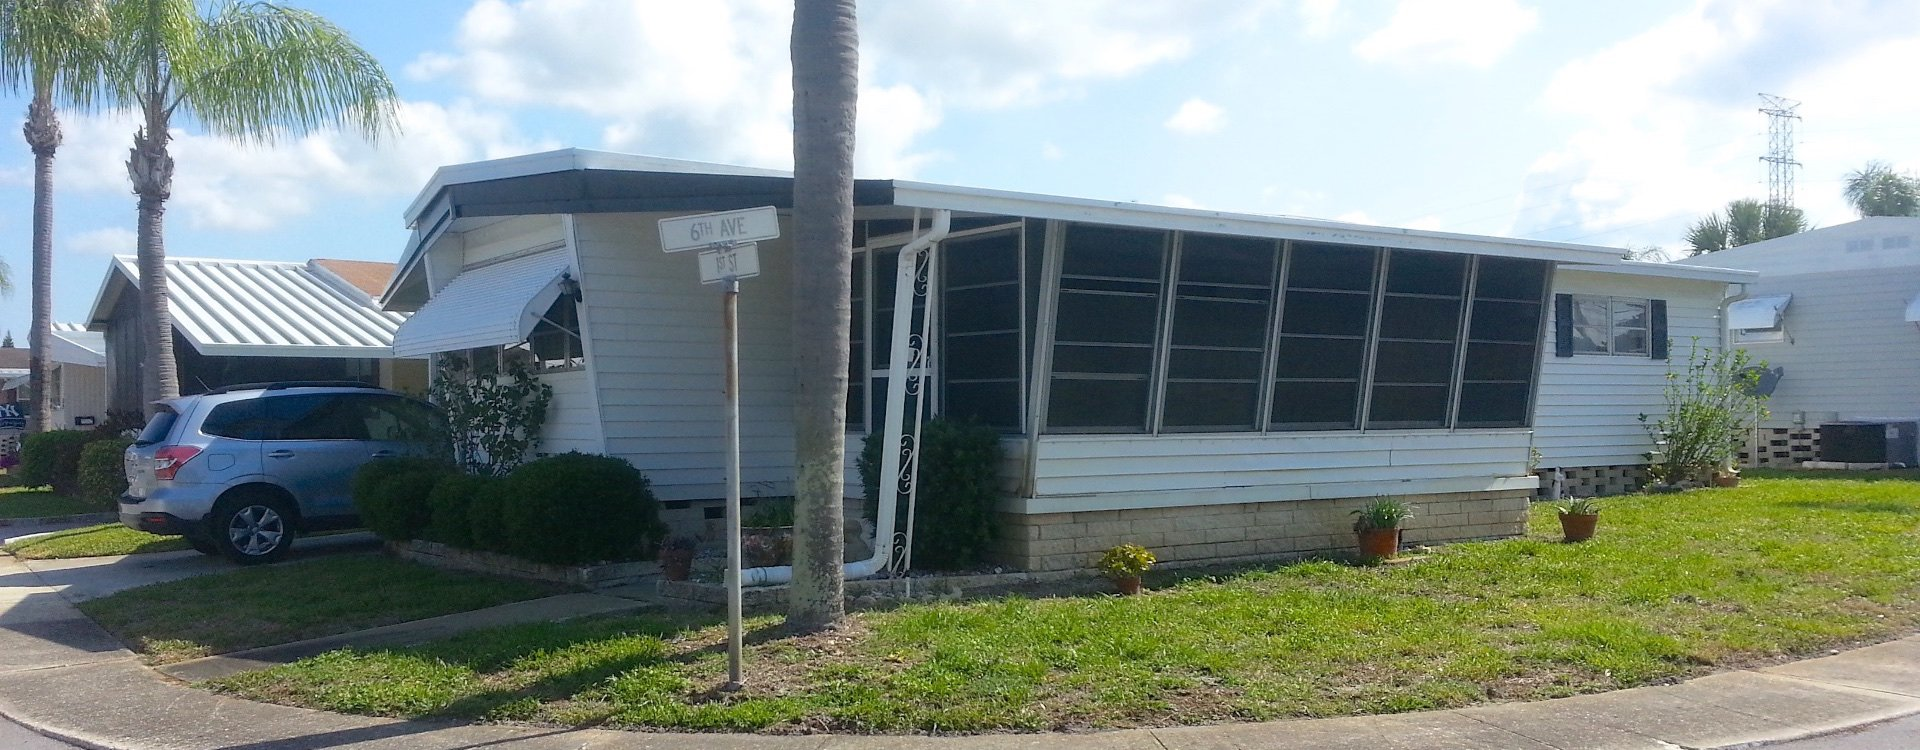 Mobile Home For Sale - Clearwater, FL Regency Heights #105 on mobile cars commercial, heales is home commercial, mobile health,